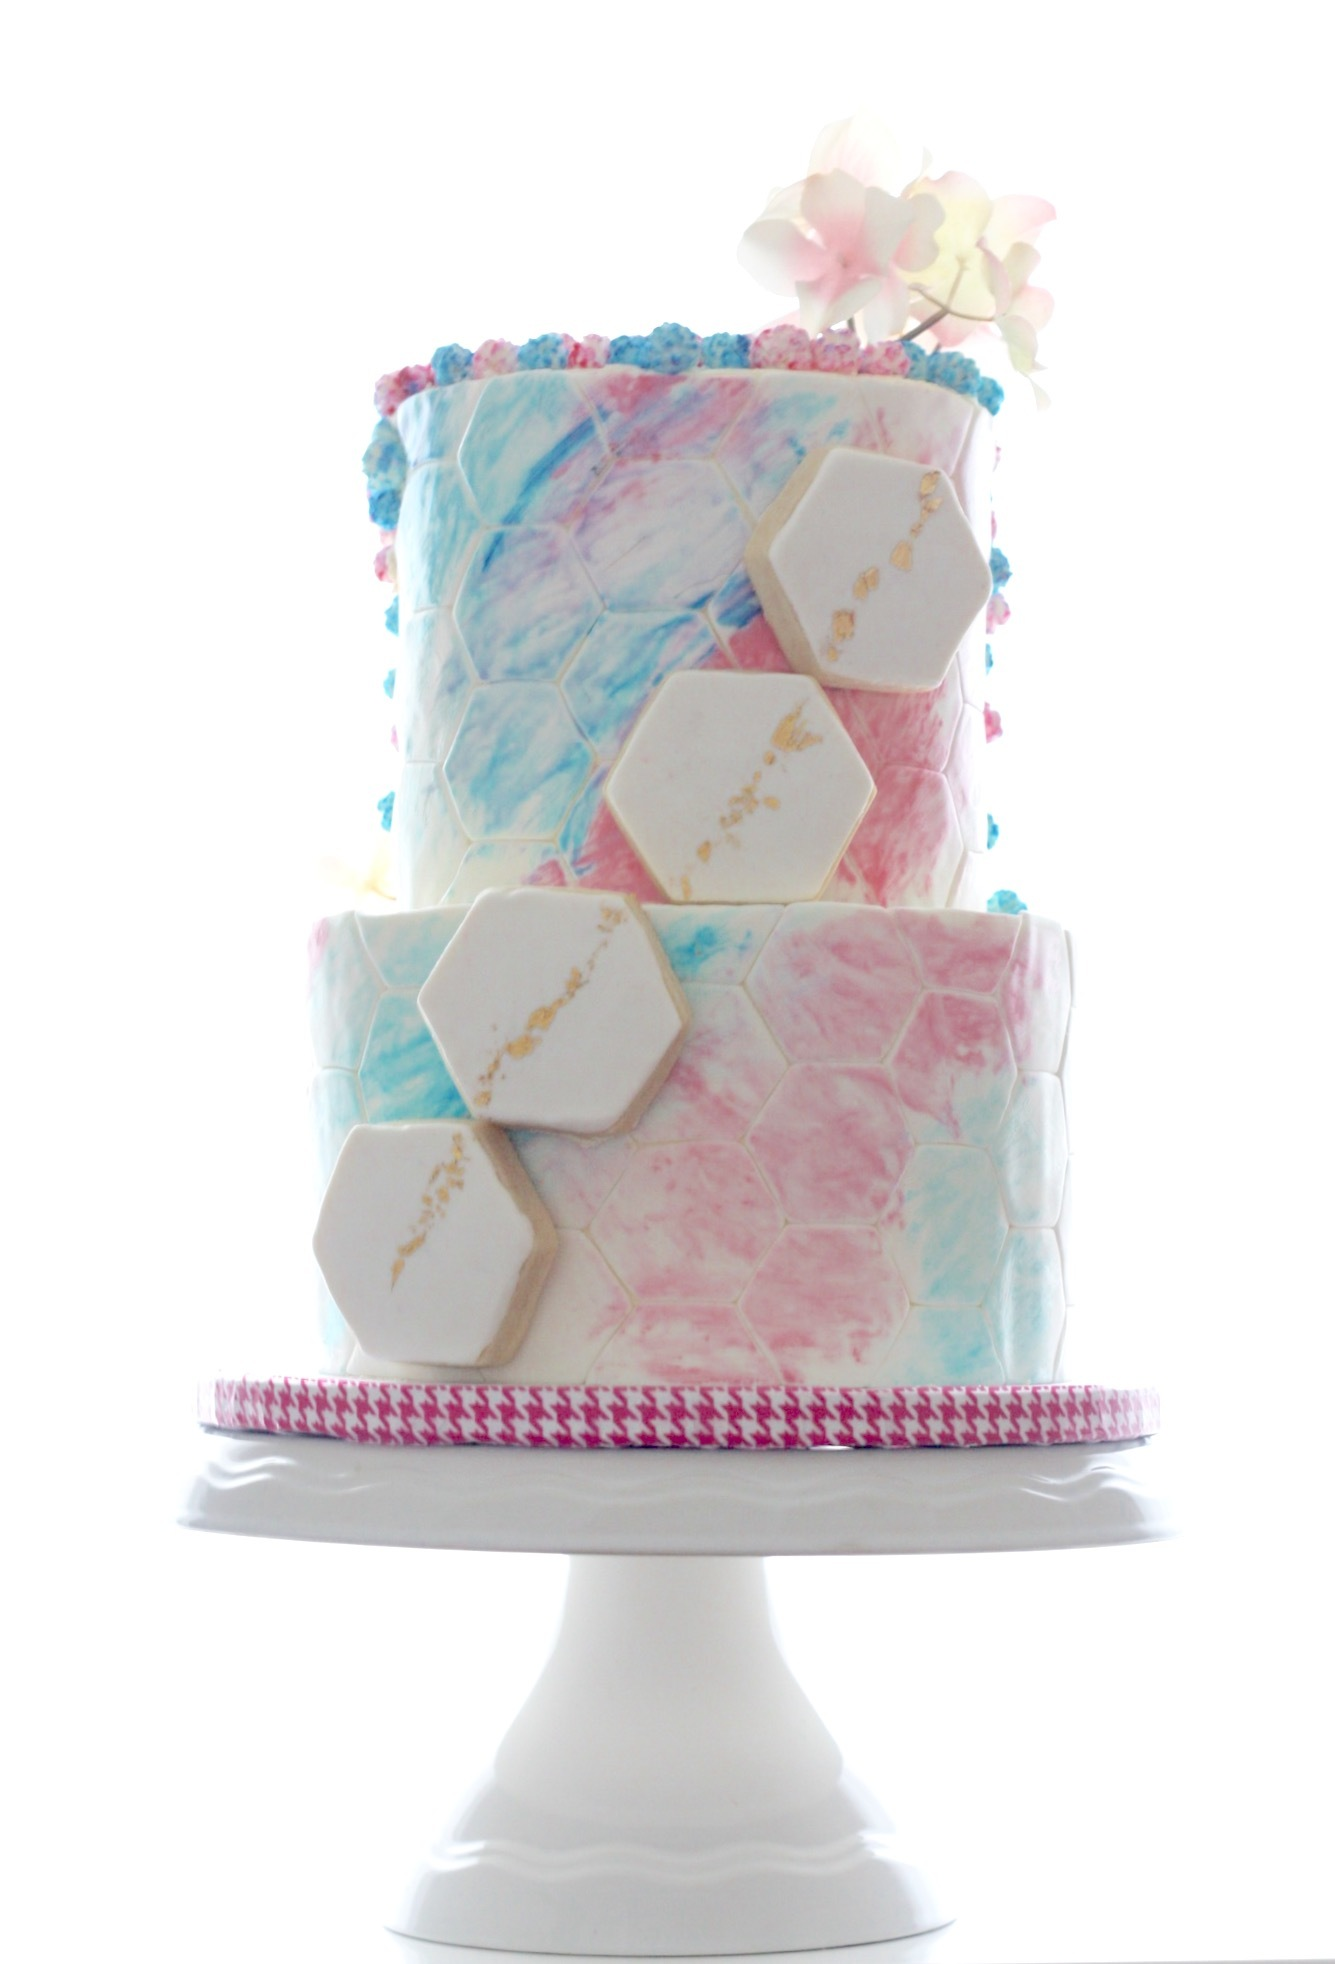 Pastel watercolor geometric wedding cake